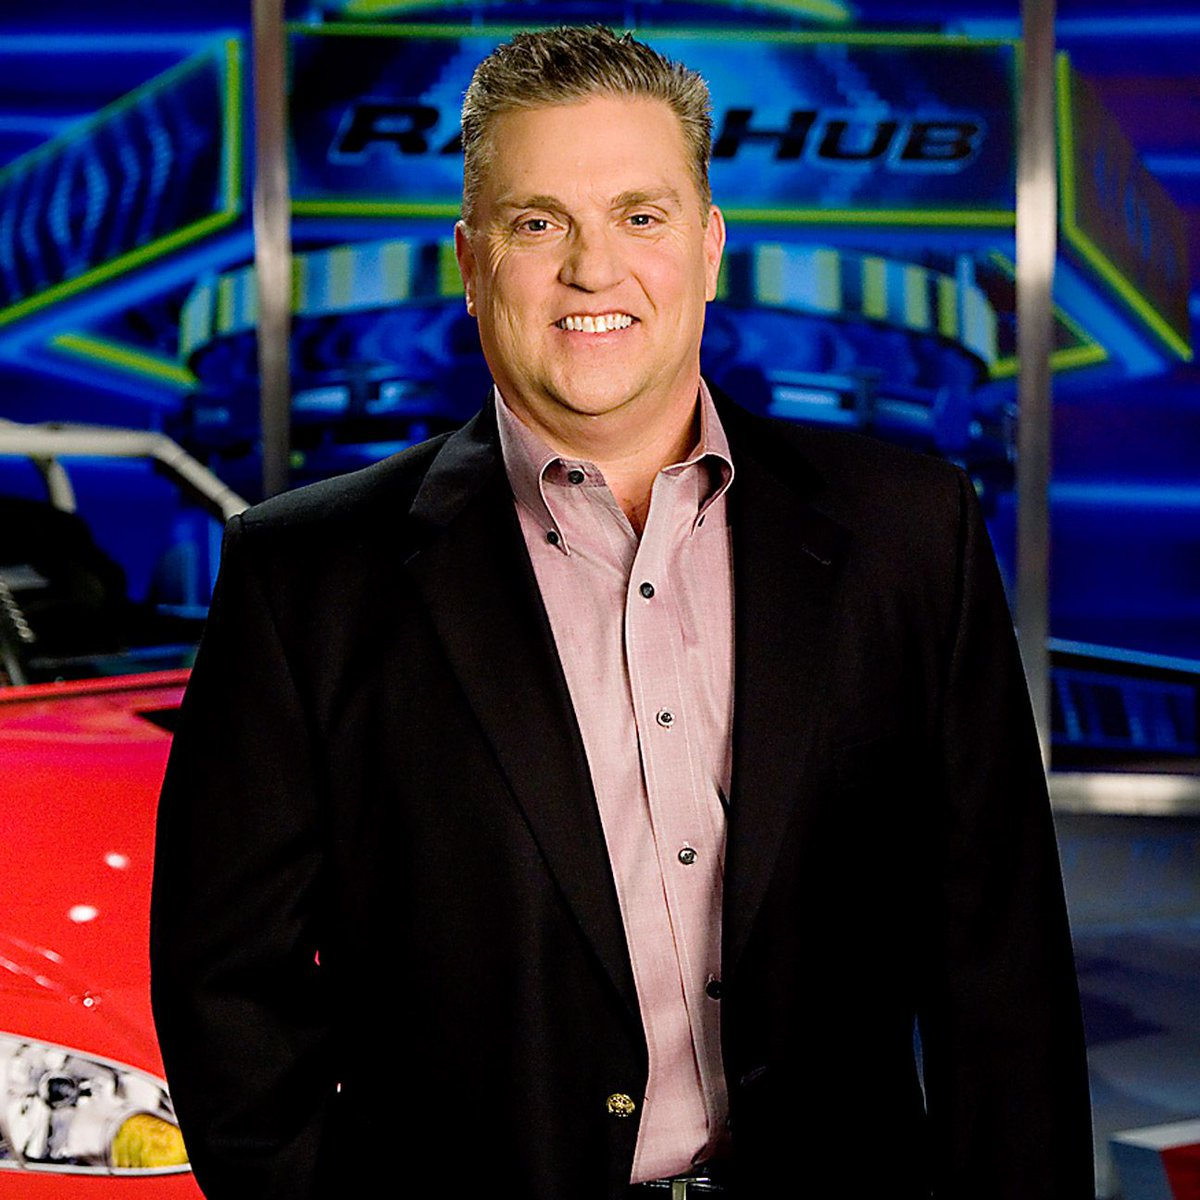 Retweet to wish @FOXSports1's @SteveByrnes12 a speedy trip out of the ICU. Your fight is inspirational, Steve #NASCAR http://t.co/4u5VlSAxLw